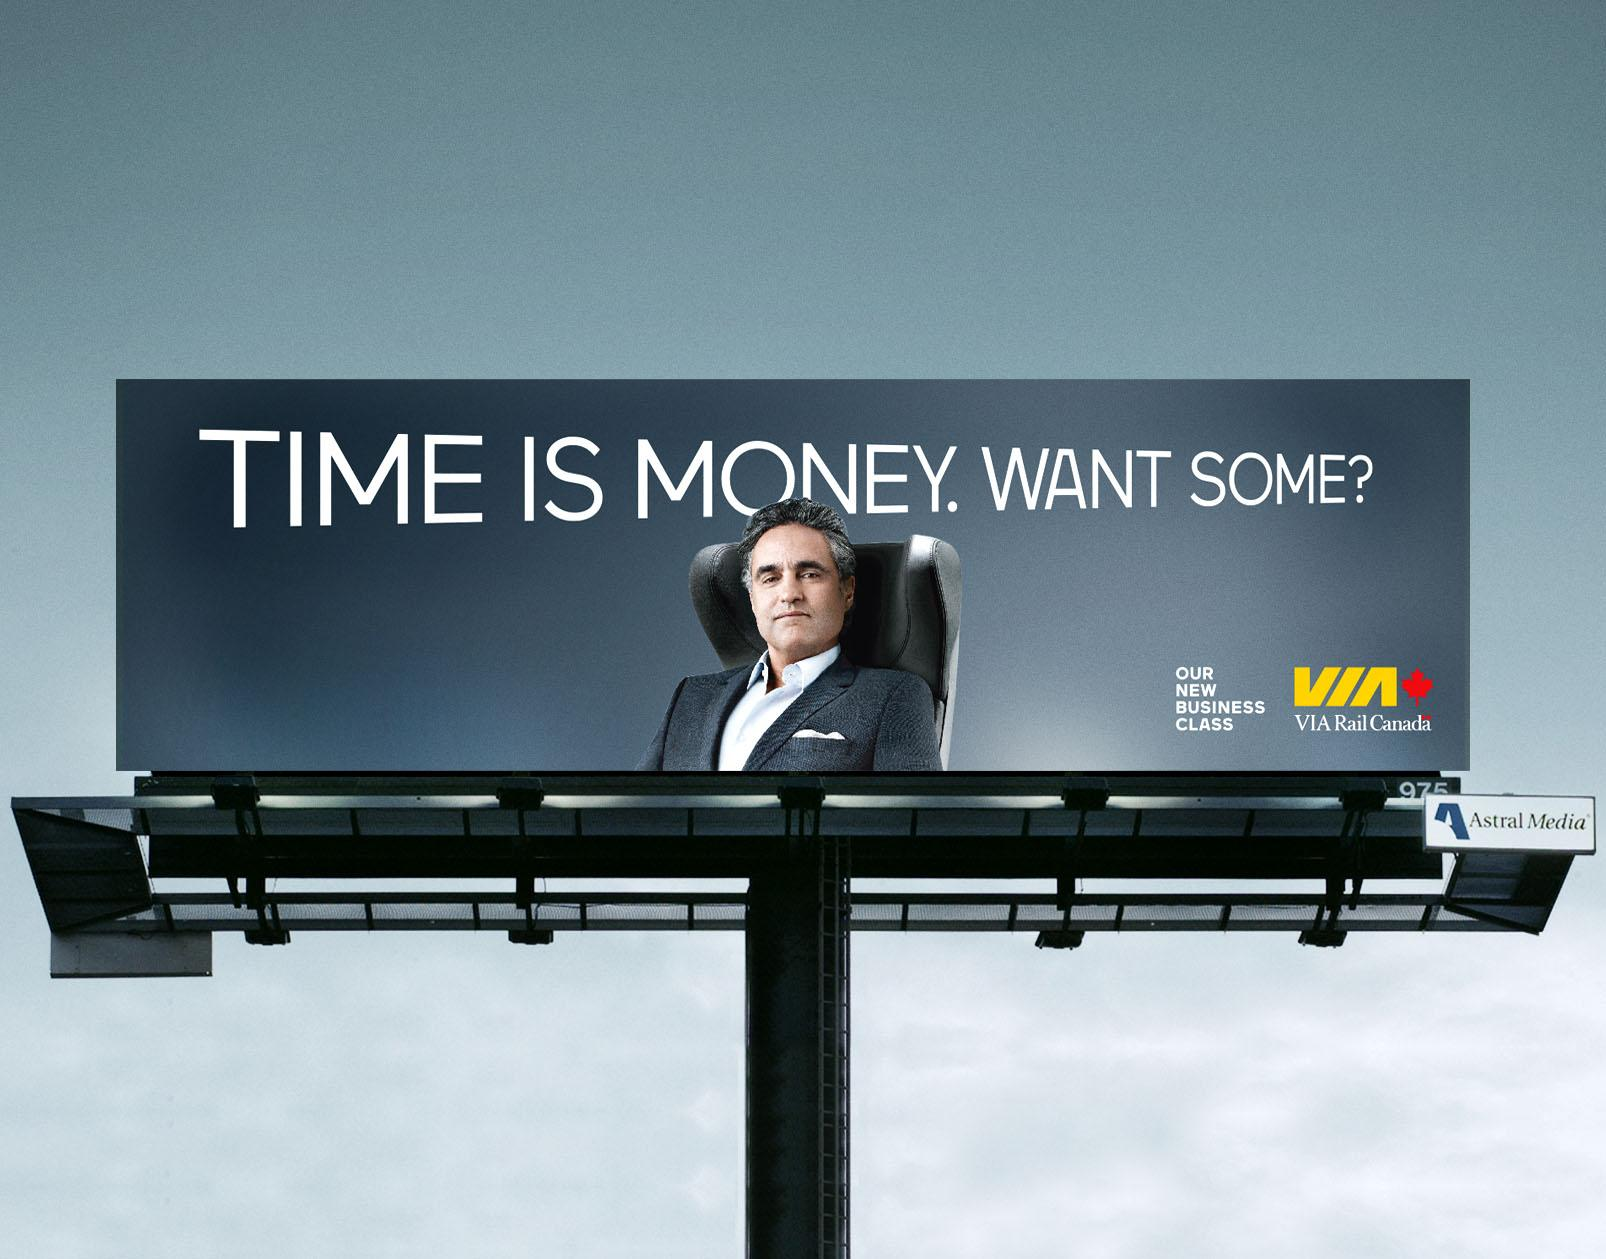 VIA Rail Outdoor Ad -  Time is money.